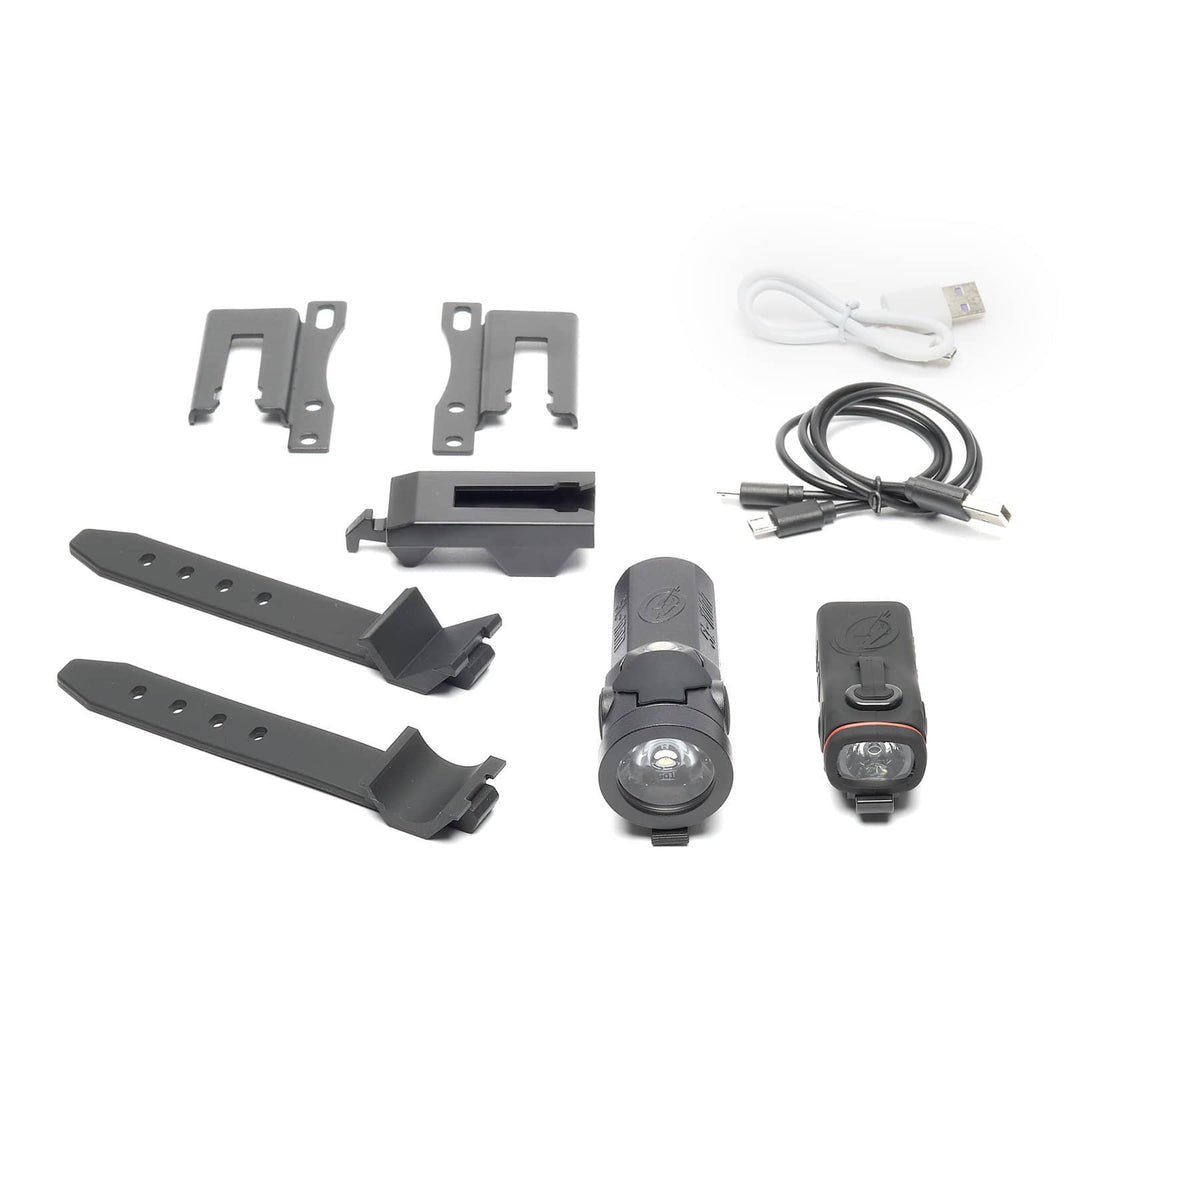 SL-1000 Mountainboard Combo Pack